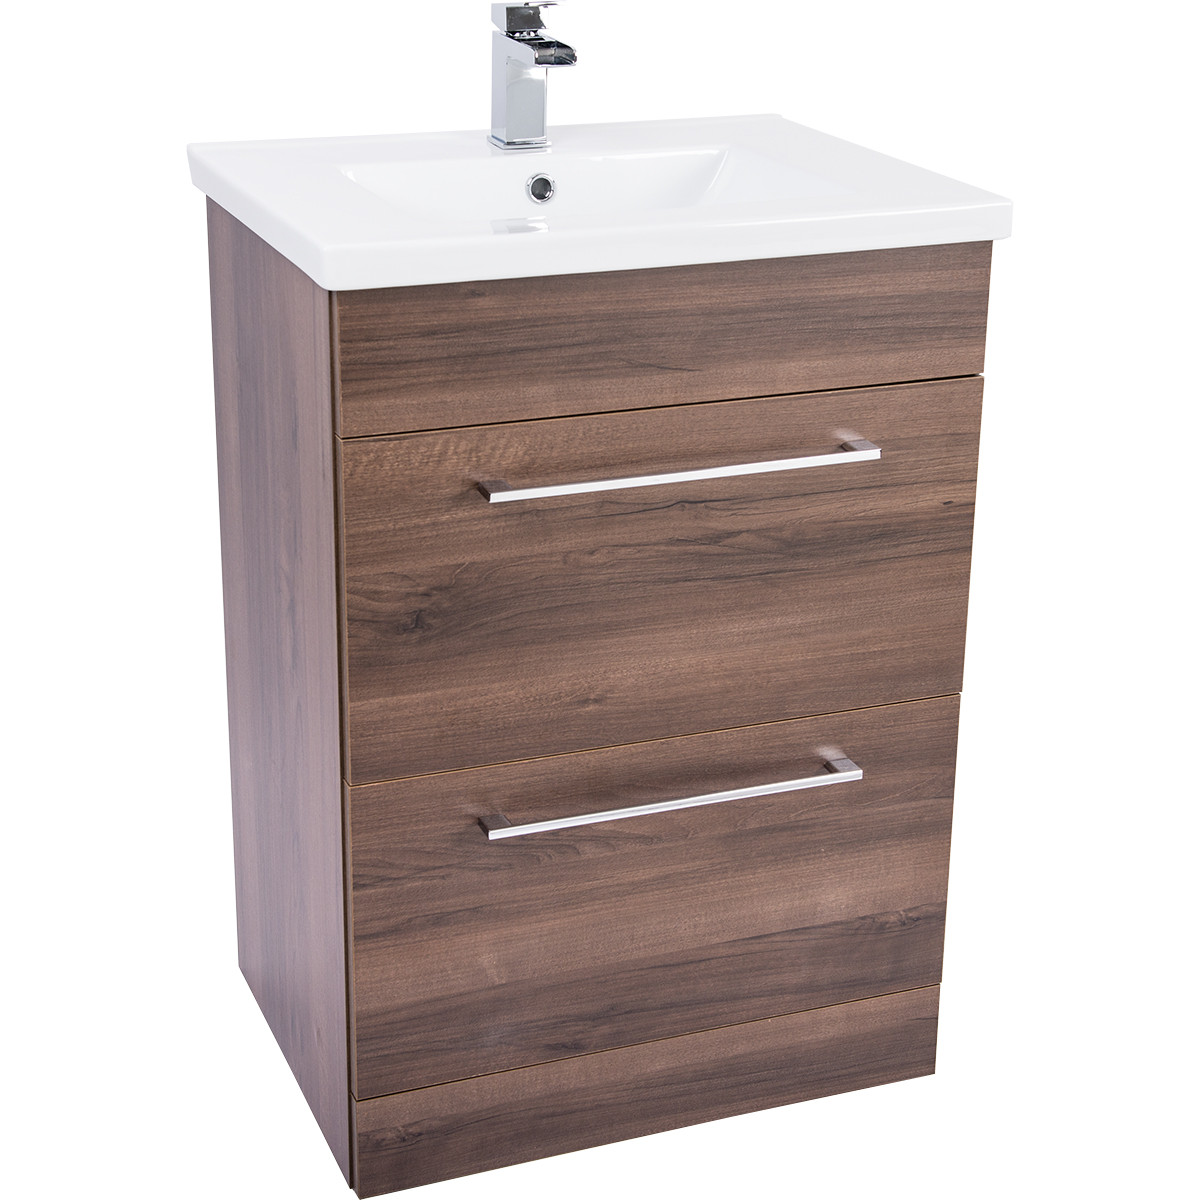 Napoli Walnut 2 Drawer 600 Unit & Basin